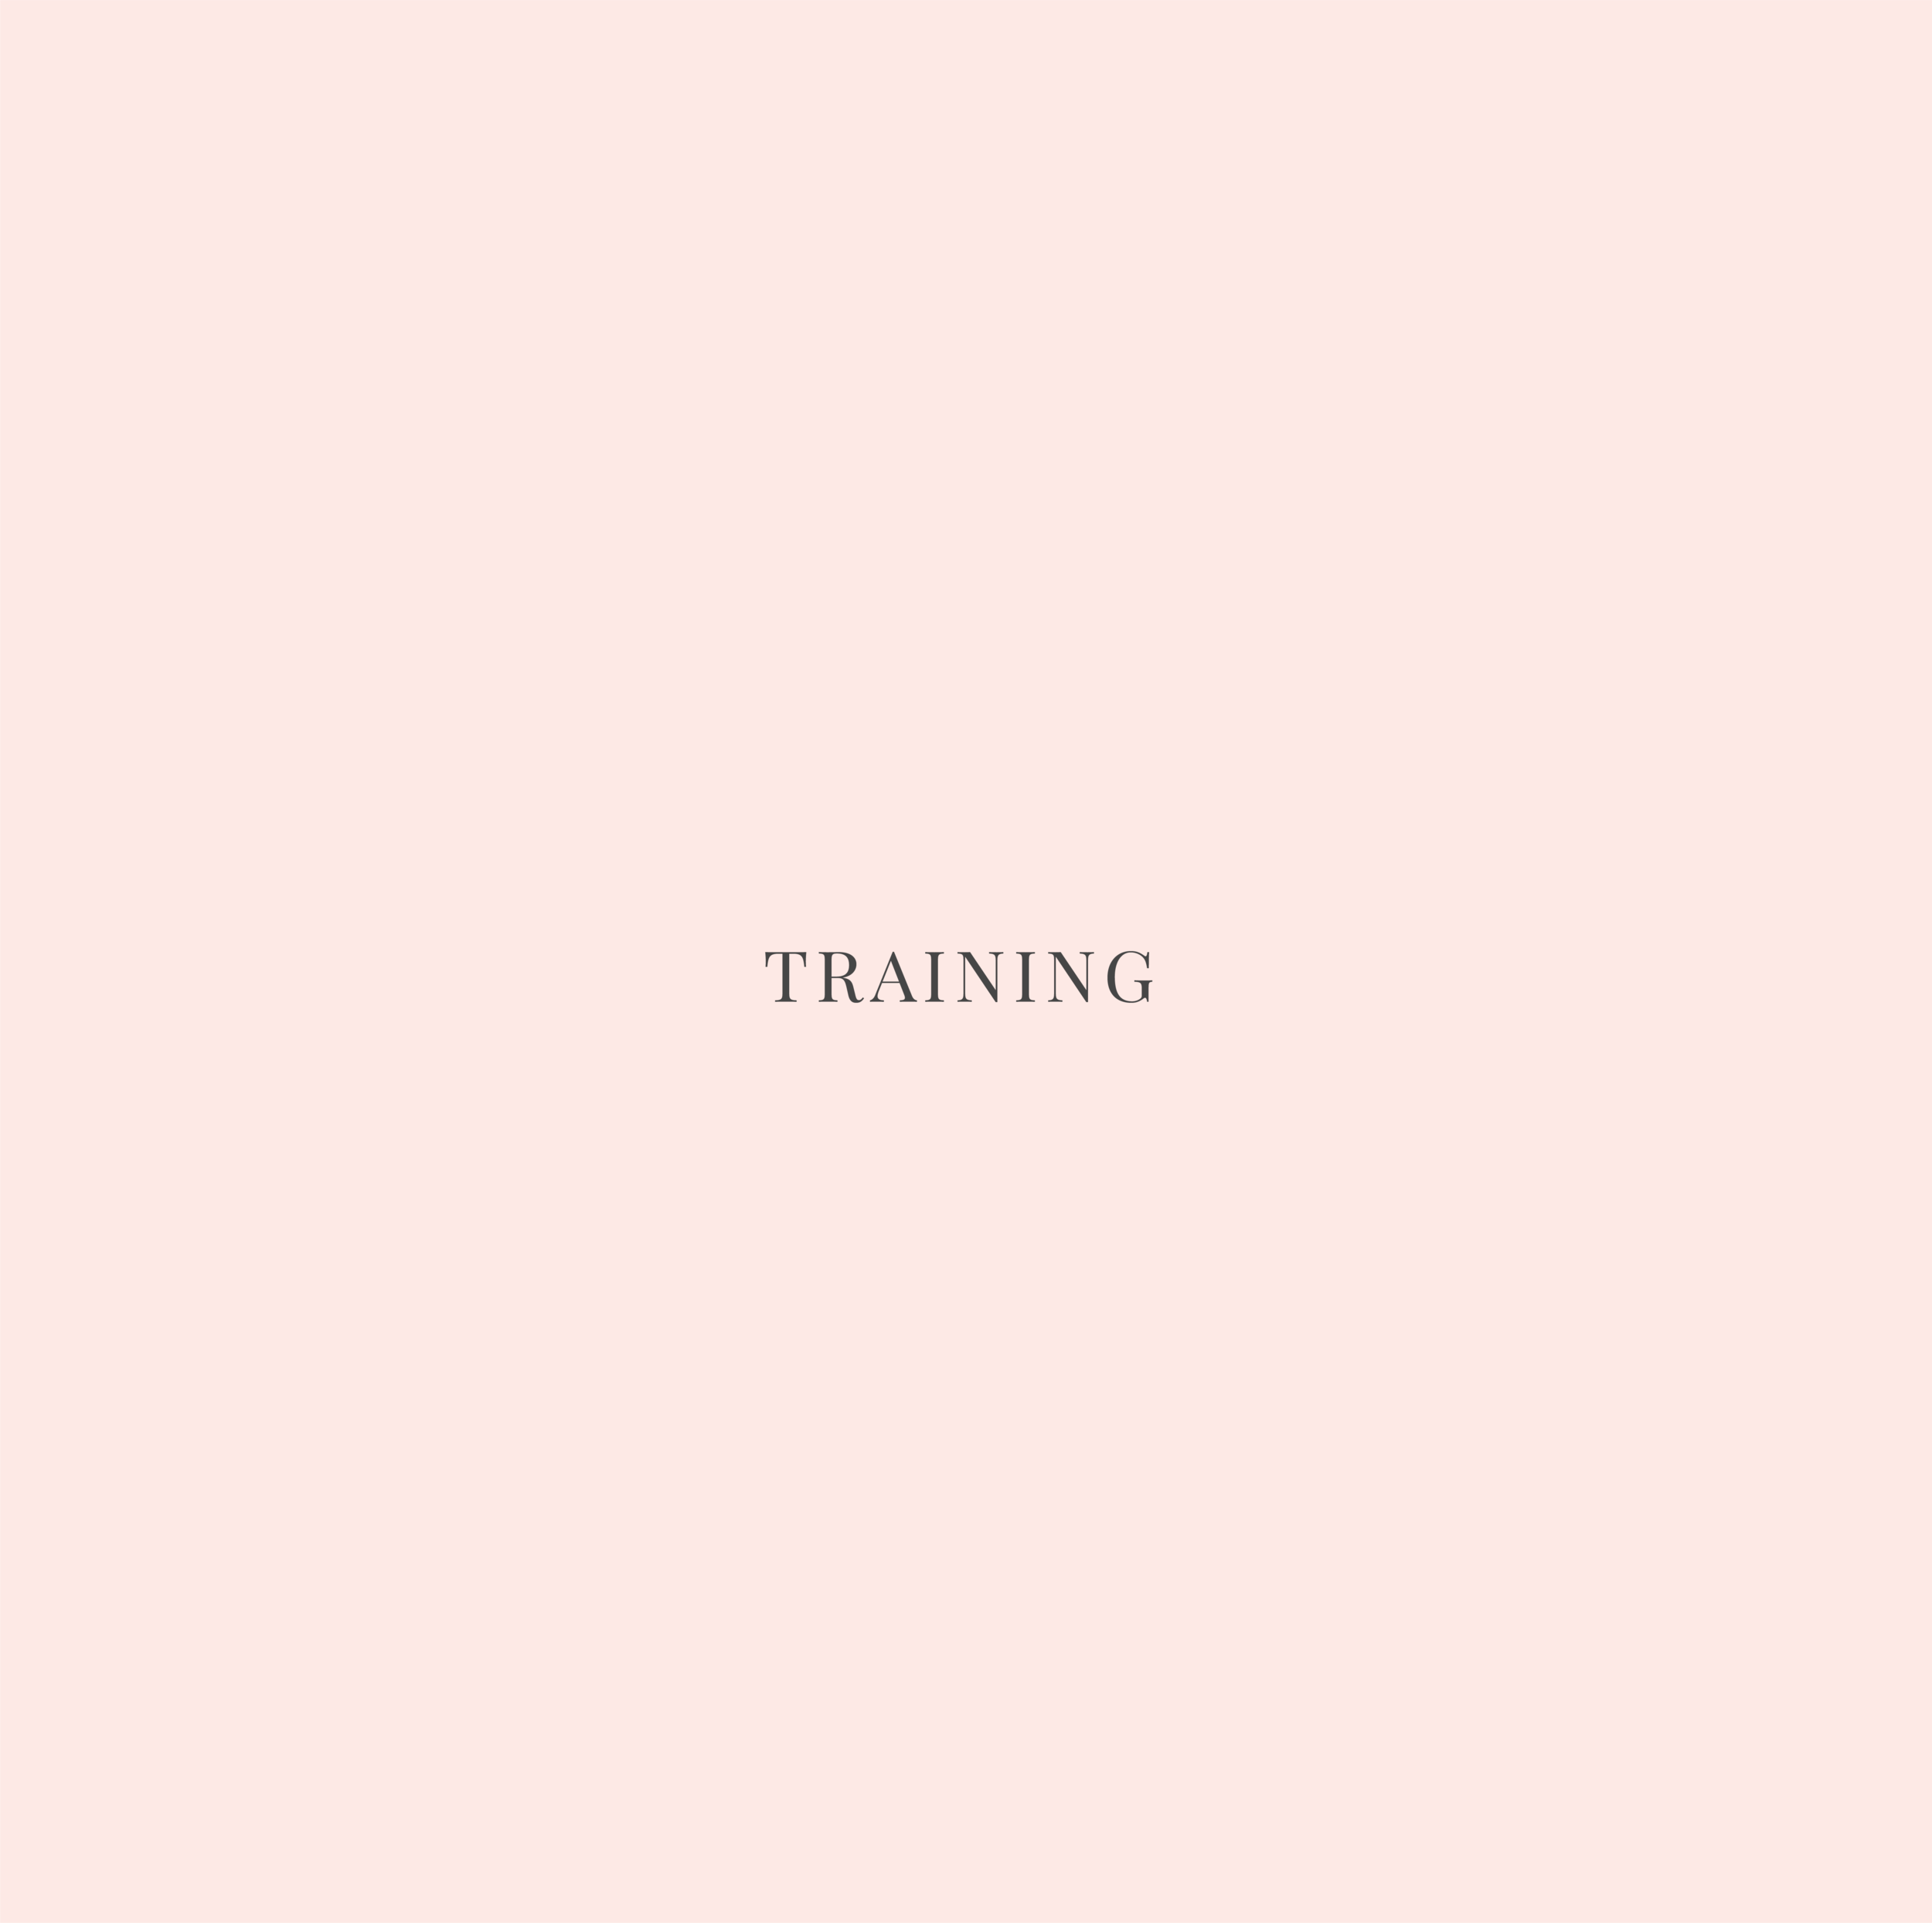 Training.png